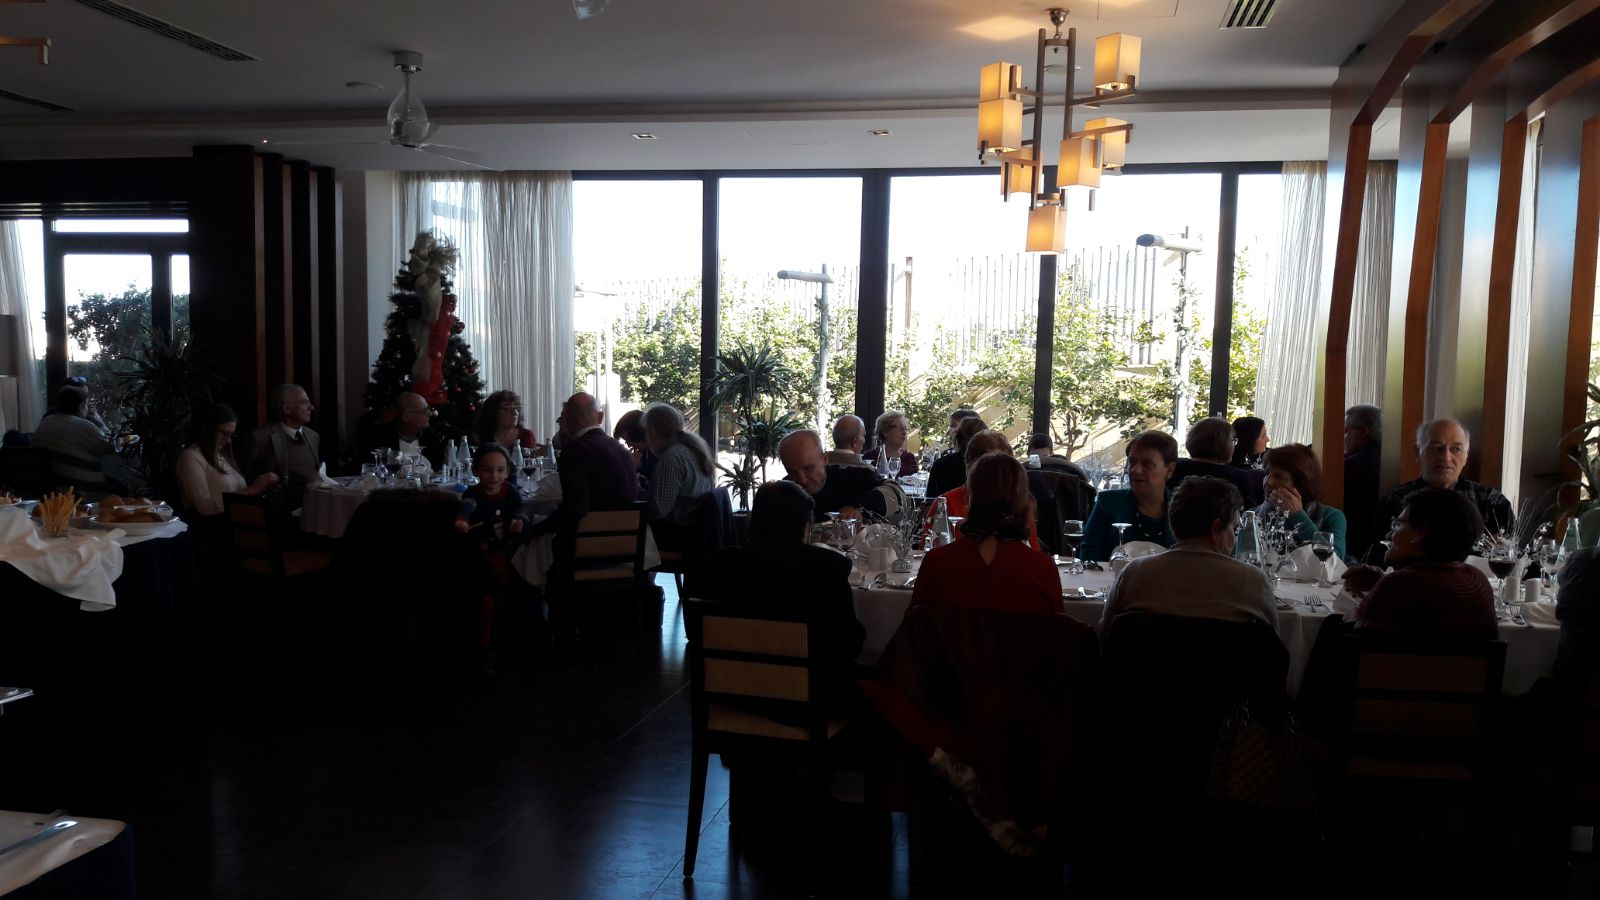 Christmas Lunch at the Hilltop Gardens